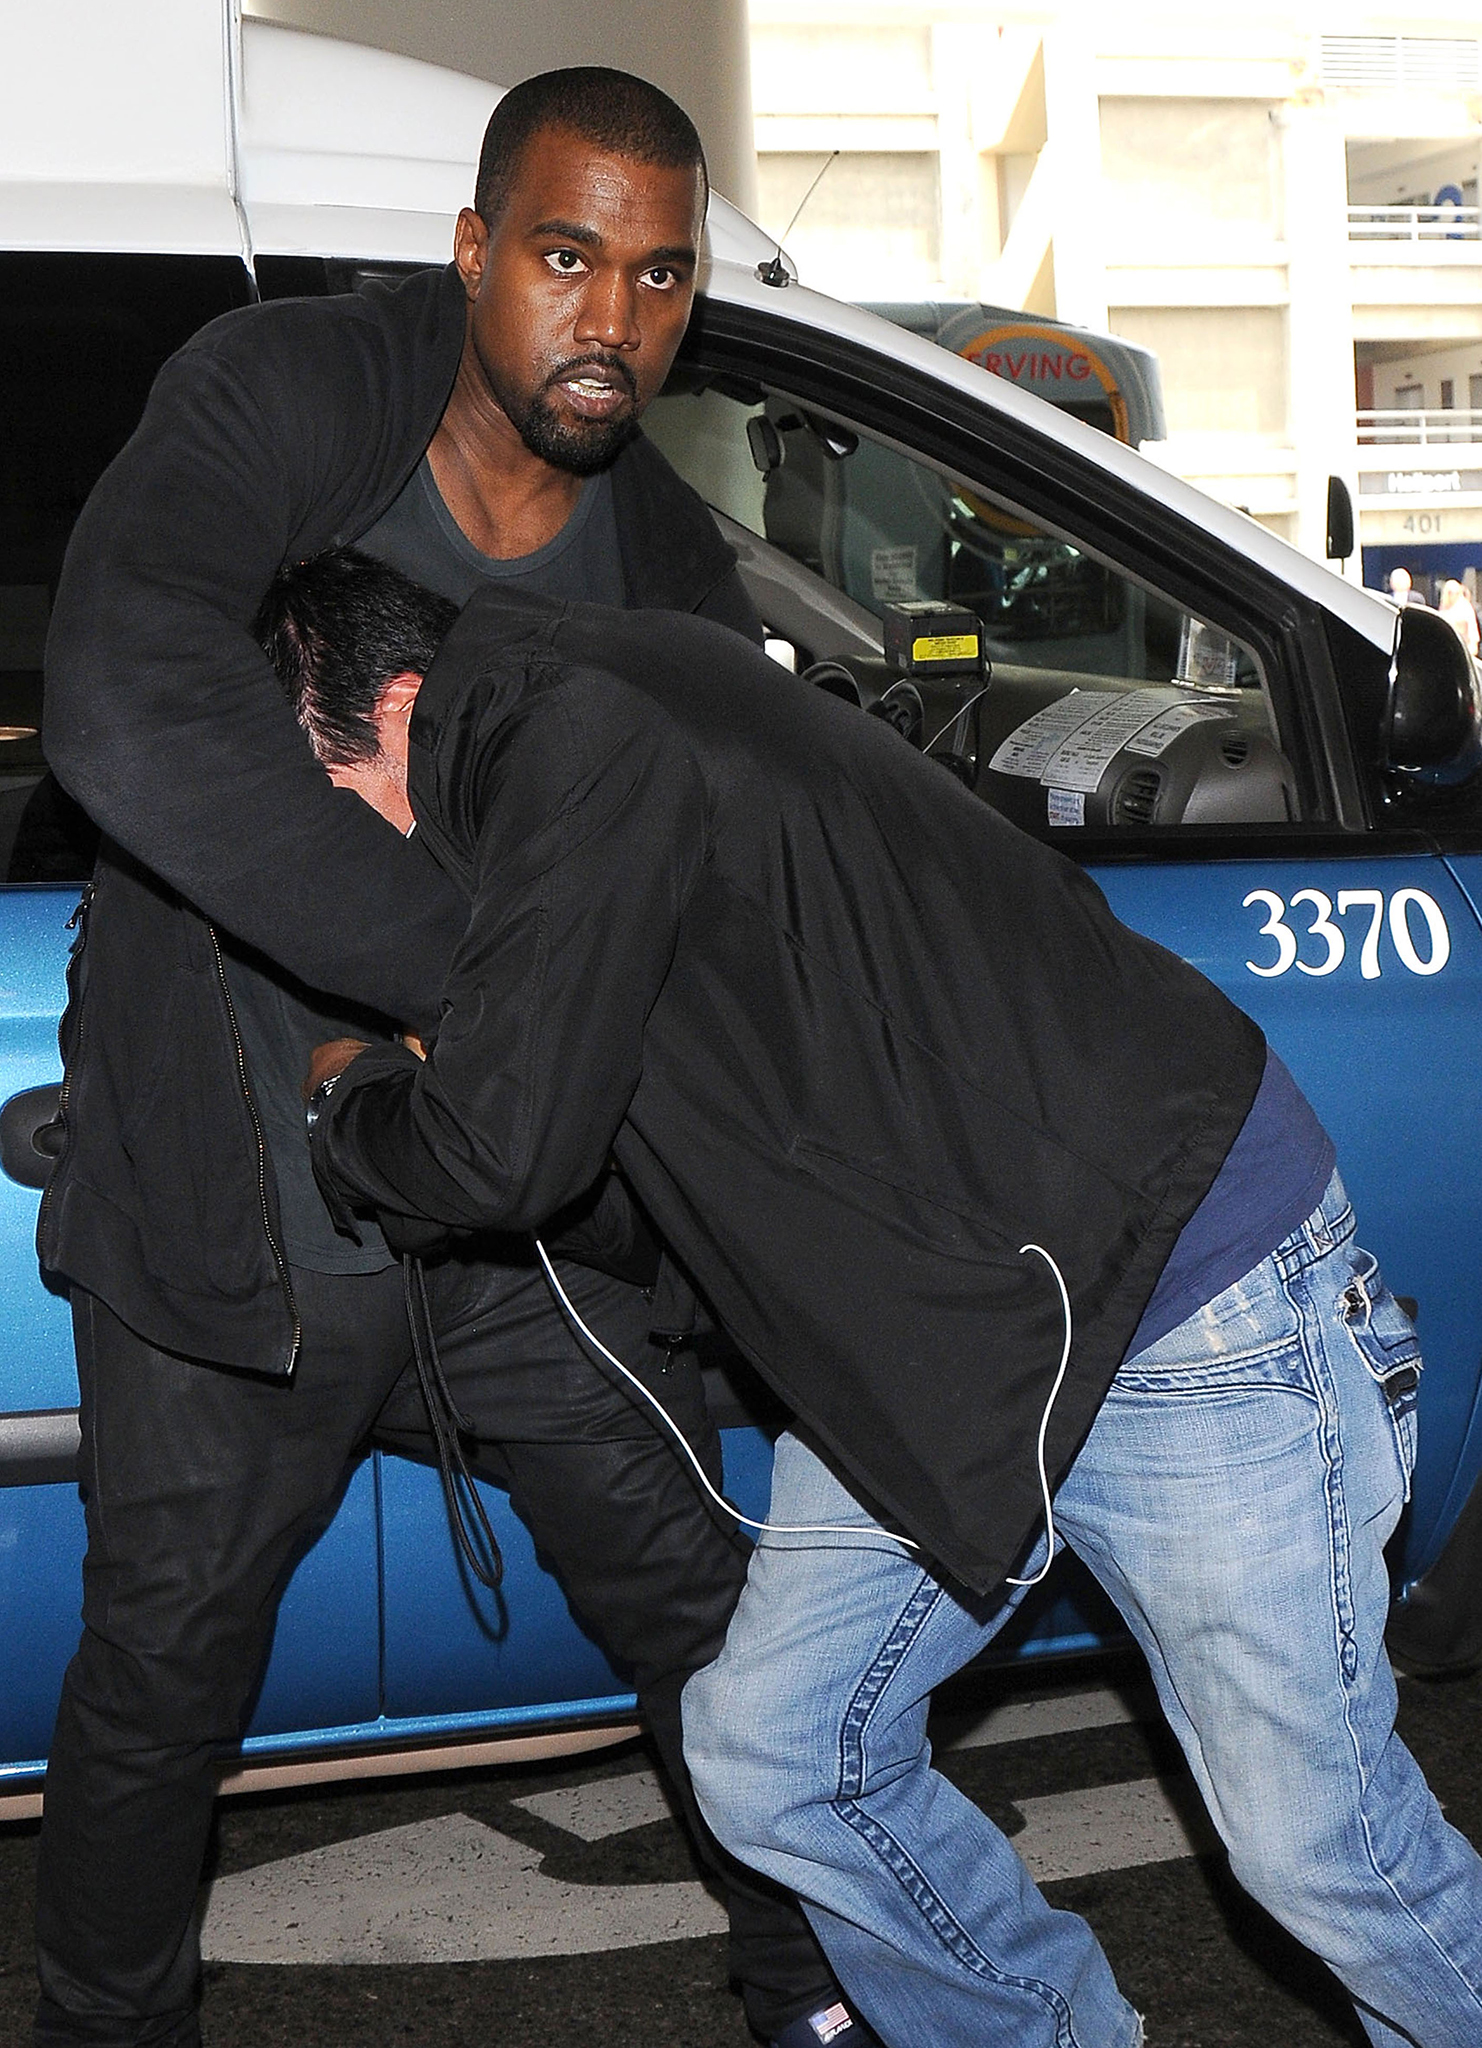 Kanye West's scuffle has led to a lawsuit. (FameFlynet)